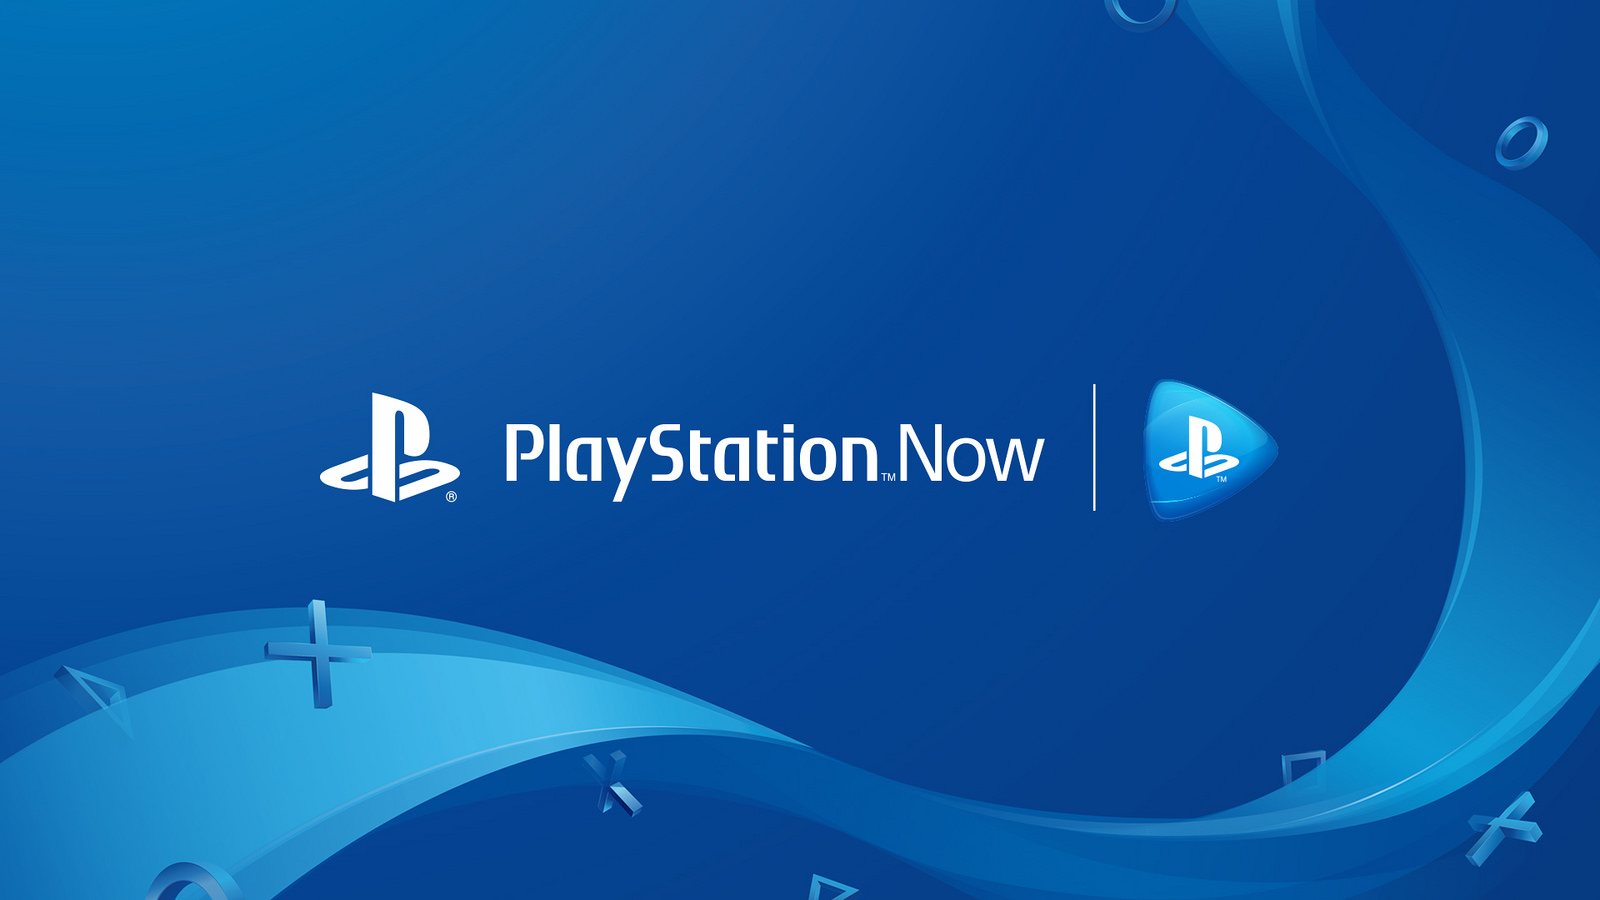 4 Games That Comes With Ps4 : Playstation now finally adds ps titles